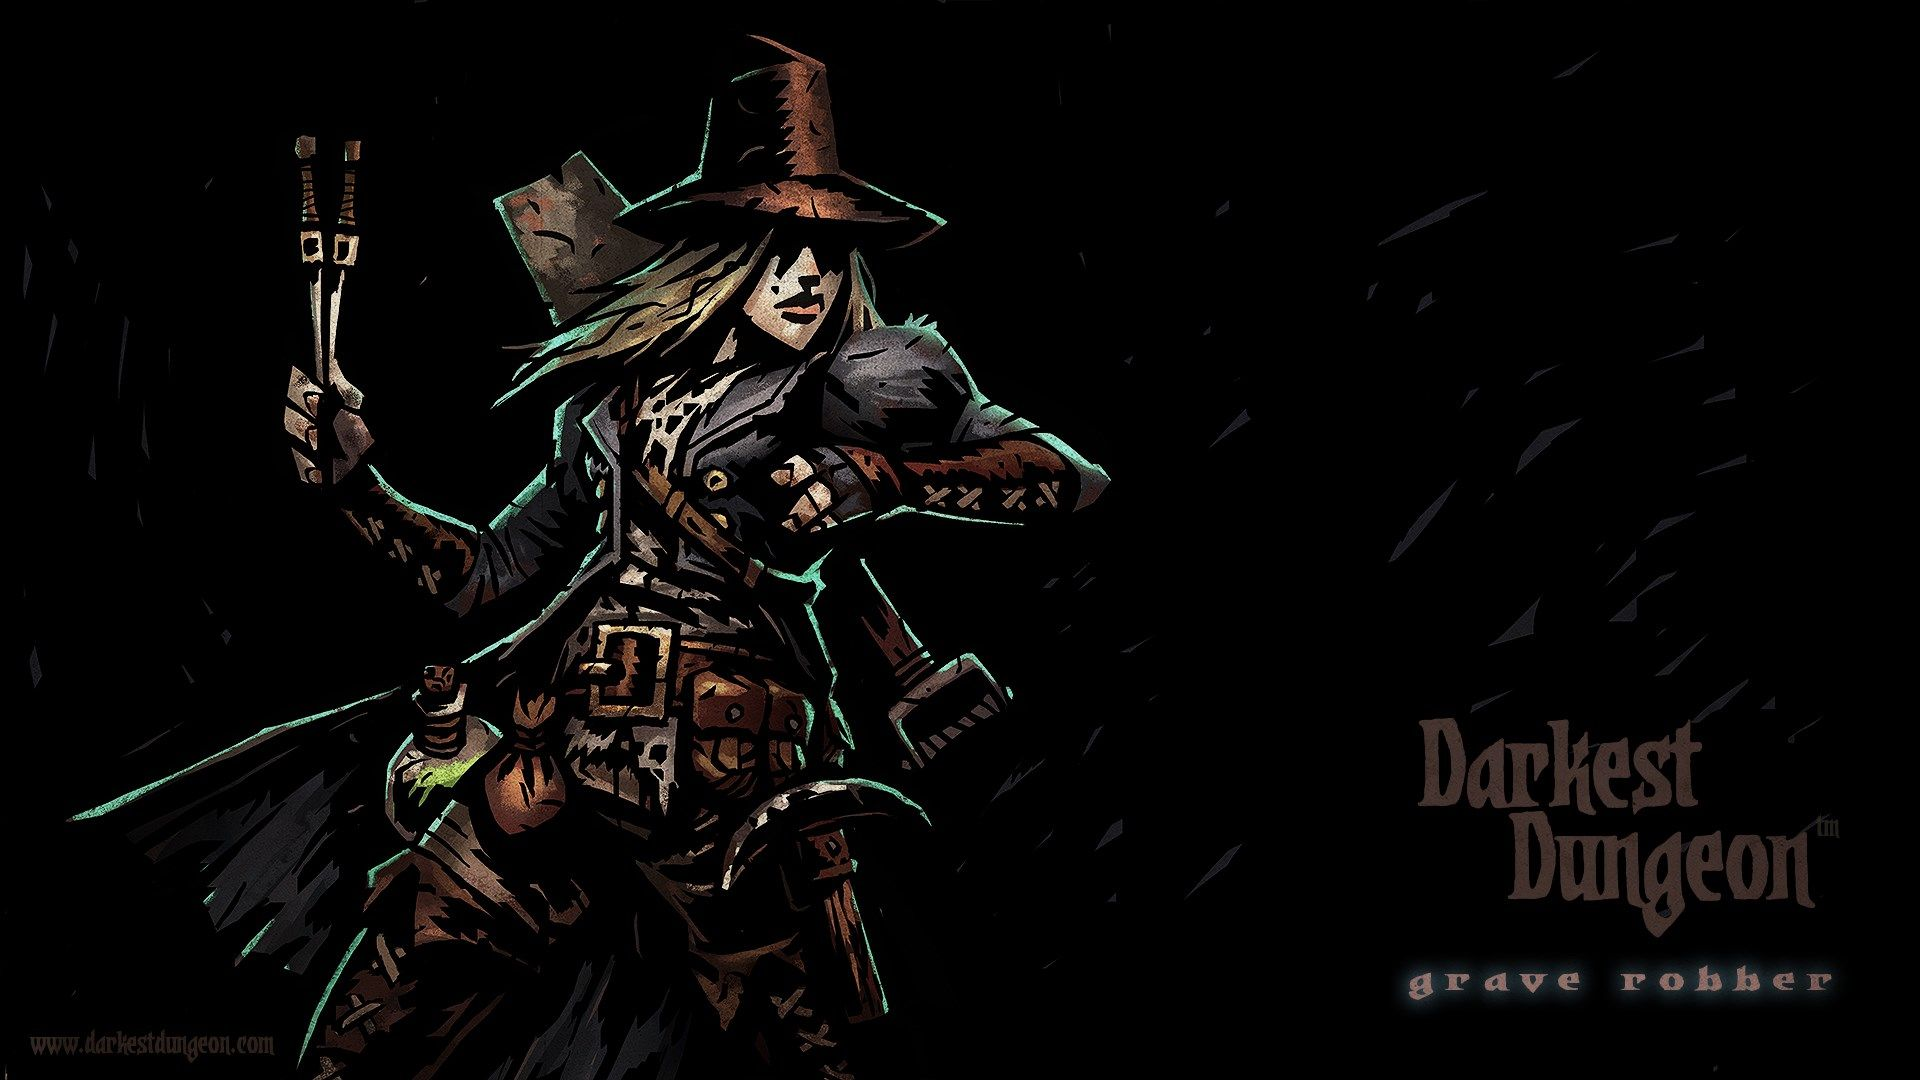 Darkest Dungeon Ancestor Quotes A small hamlet has become infested by demonic and unnatural creatures. wallpaper iphone hd 4k